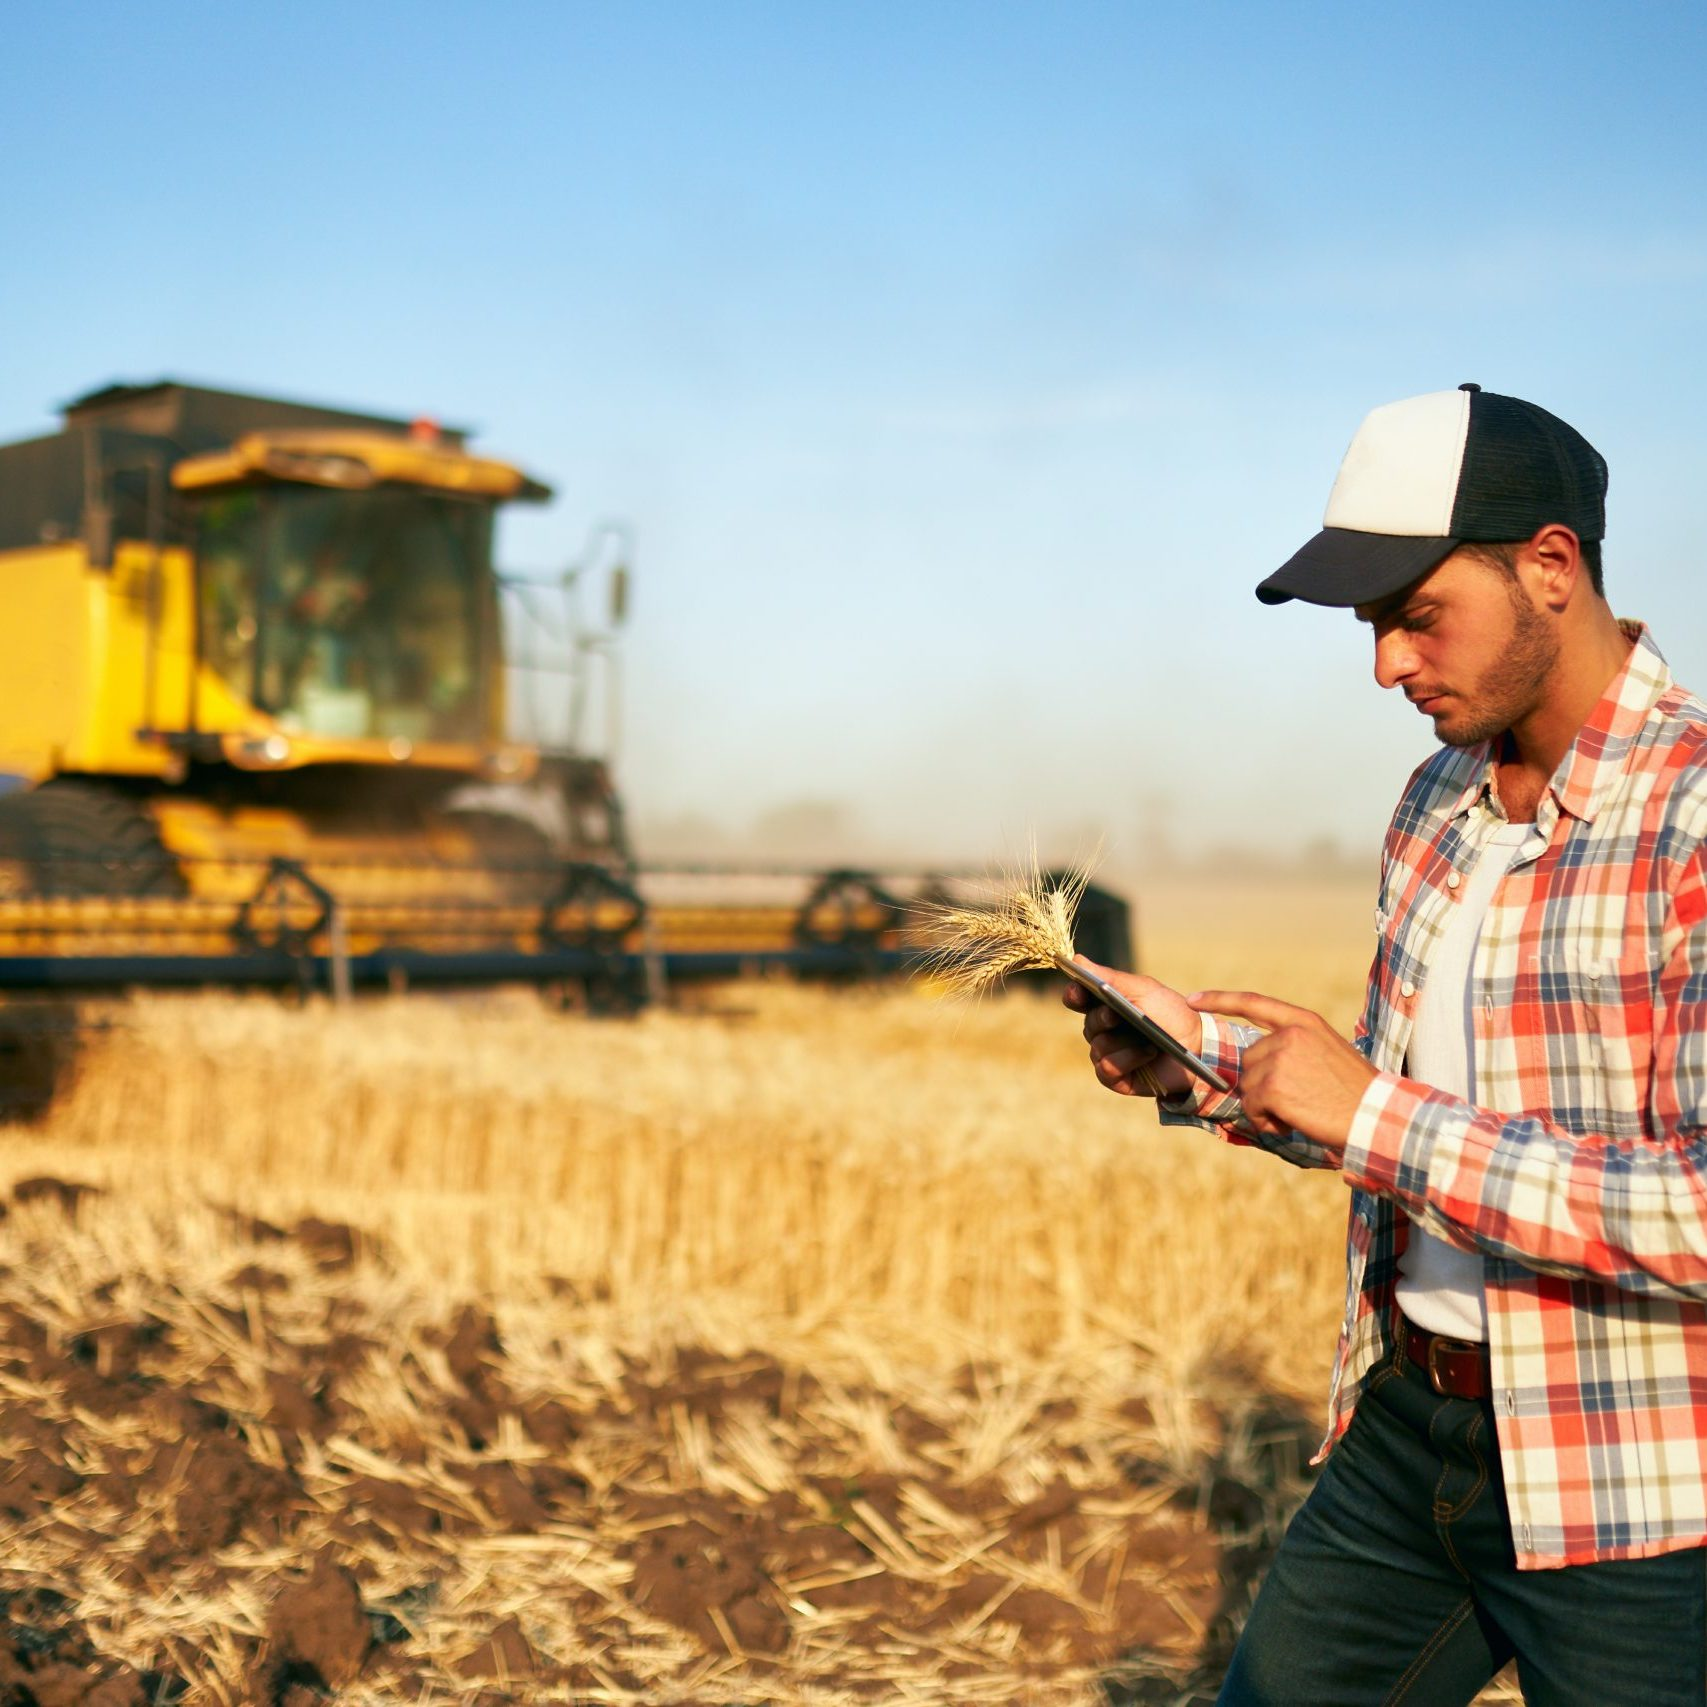 Precision farming. Farmer holding tablet for combine harvester guidance, control with modern automation system. Agronomist using online data management software generating yield maps at wheat field